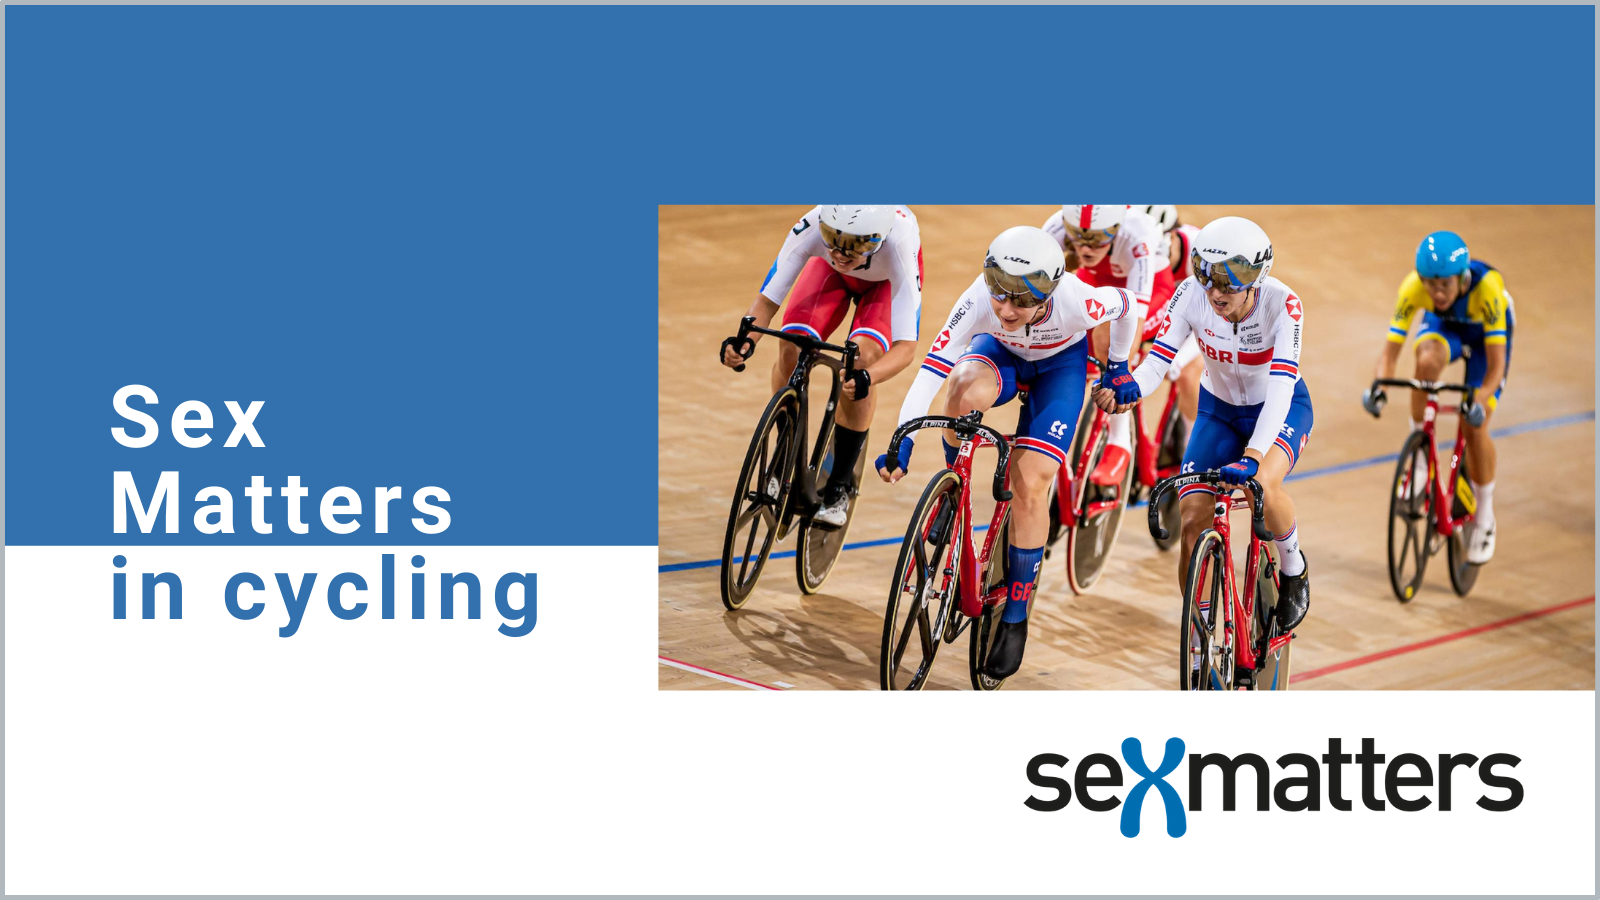 Sex Matters in cycling